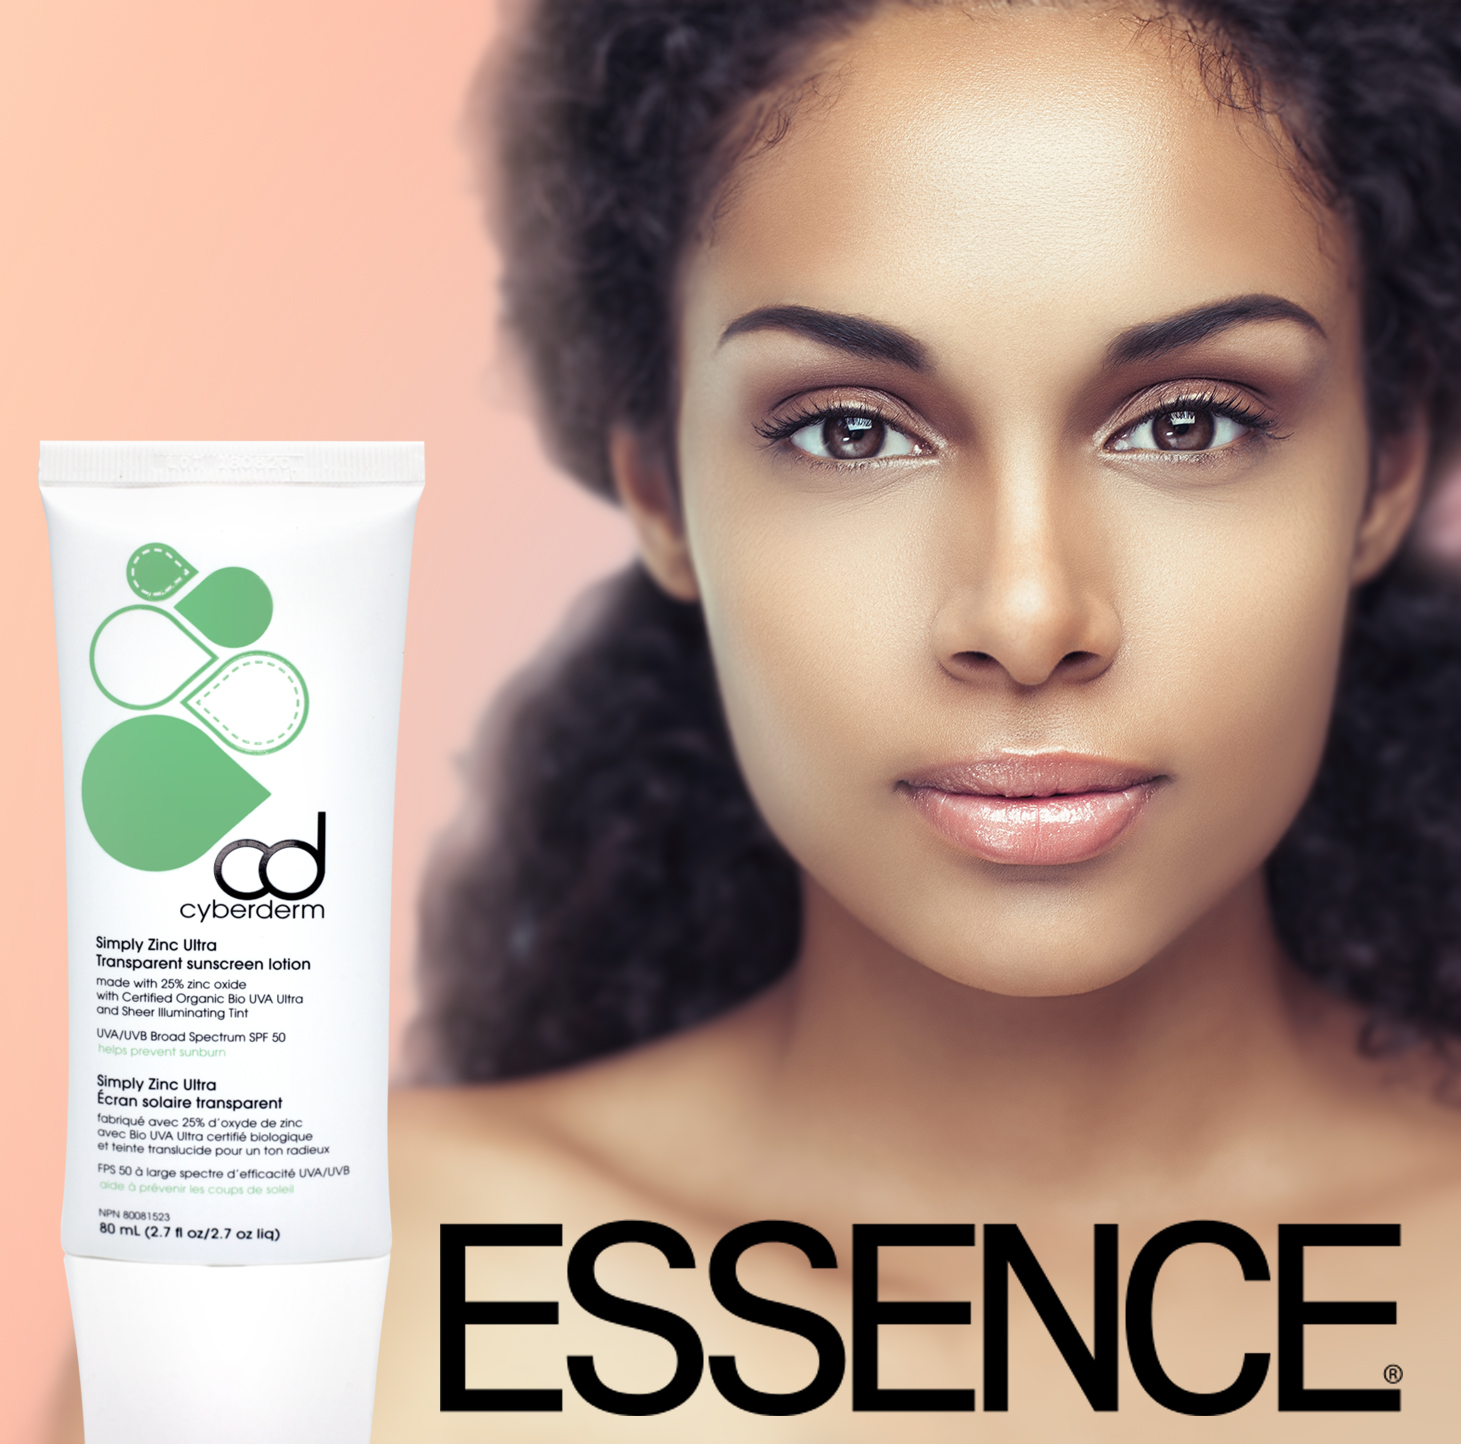 The Team At Essence Falls In Love With Our Sunscreens. - Our CyberDERM sunscreens have become a cult favourite among celebrities, so the ladies at Essence Magazine tested them to see how it performed on a range of darker skin tones. Simply put, they all loved it and went a step further by adding our Every Morning Sun Whip to their morning skincare regimen.A big thanks to the ladies at Essence for putting us to the test and showcasing how great our sunscreens perform on a wide range of skin tones. We appreciate you!